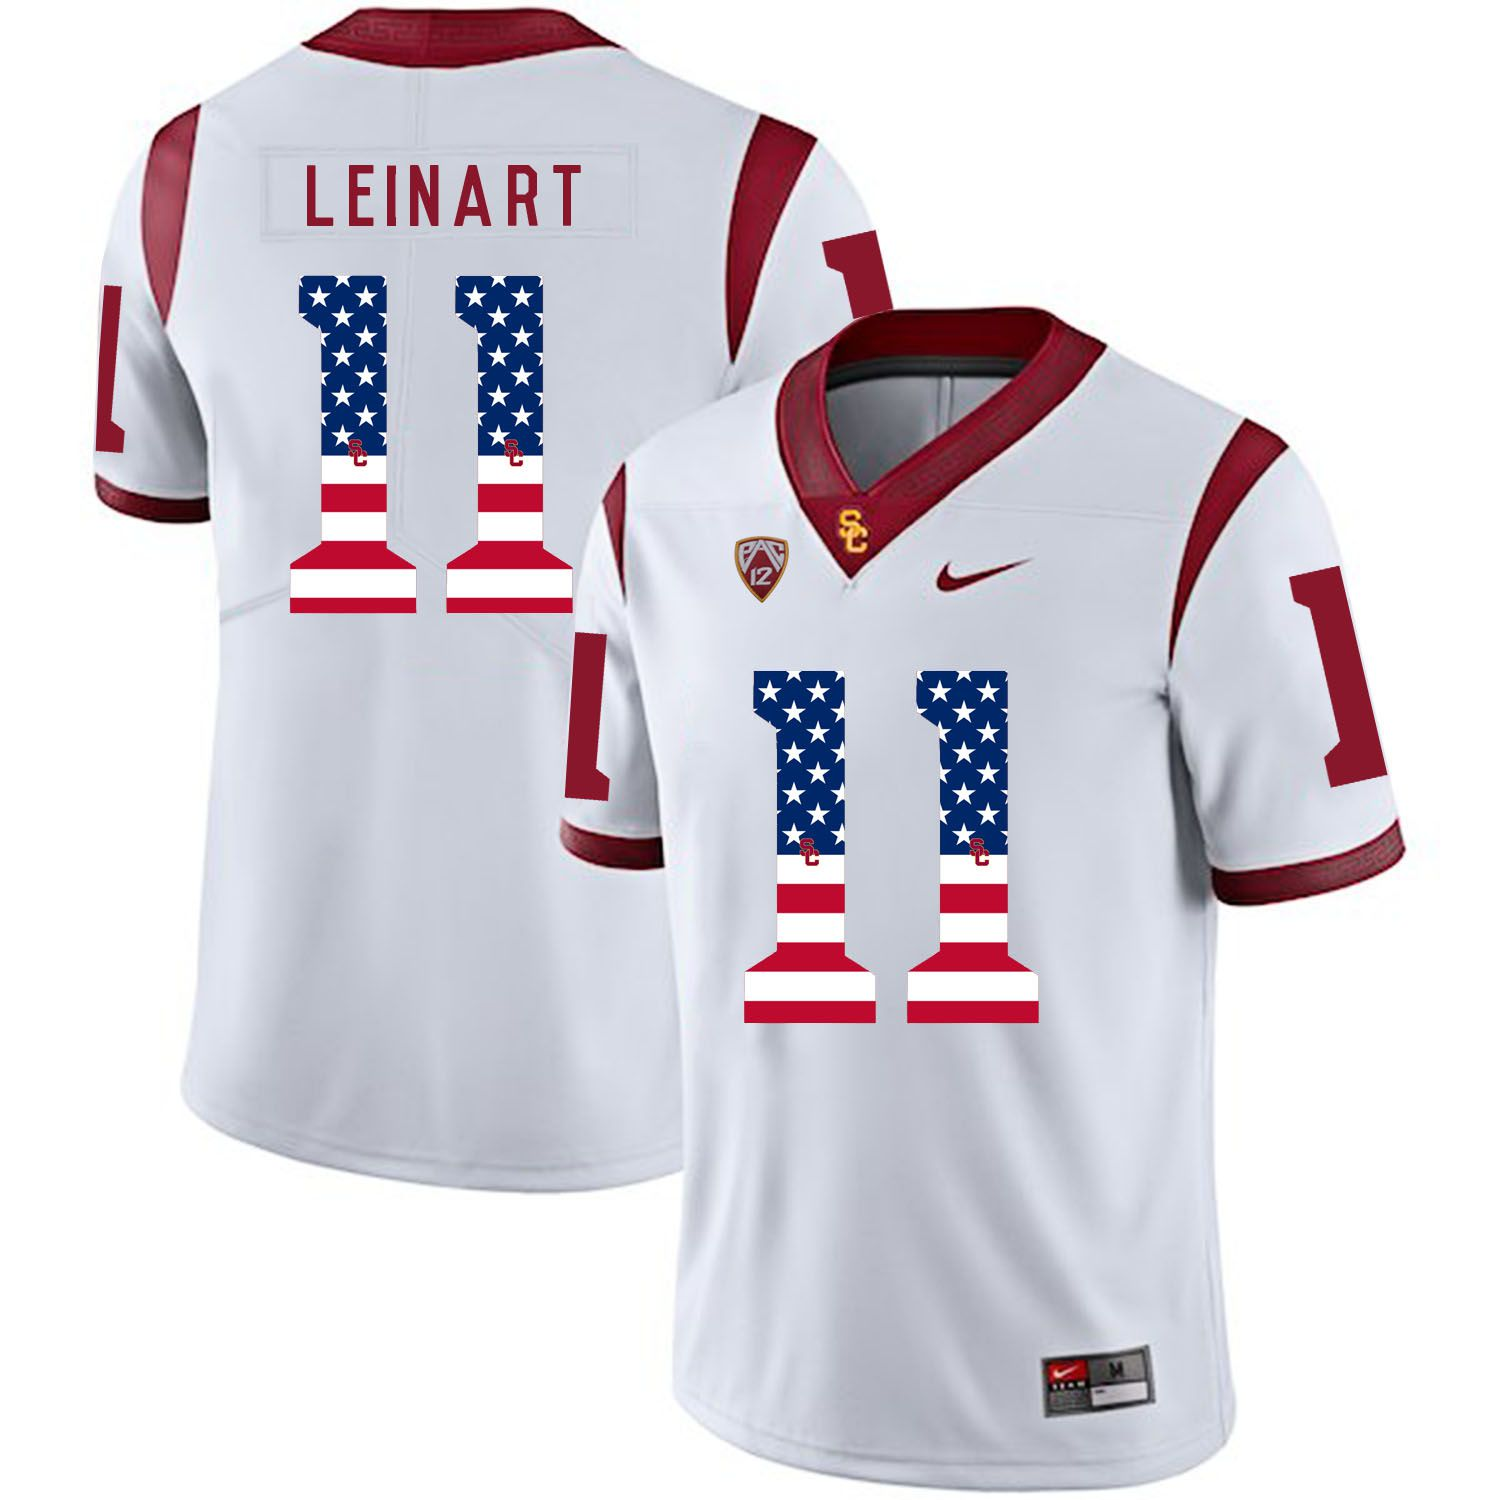 Men USC Trojans 11 Leinart White Flag Customized NCAA Jerseys